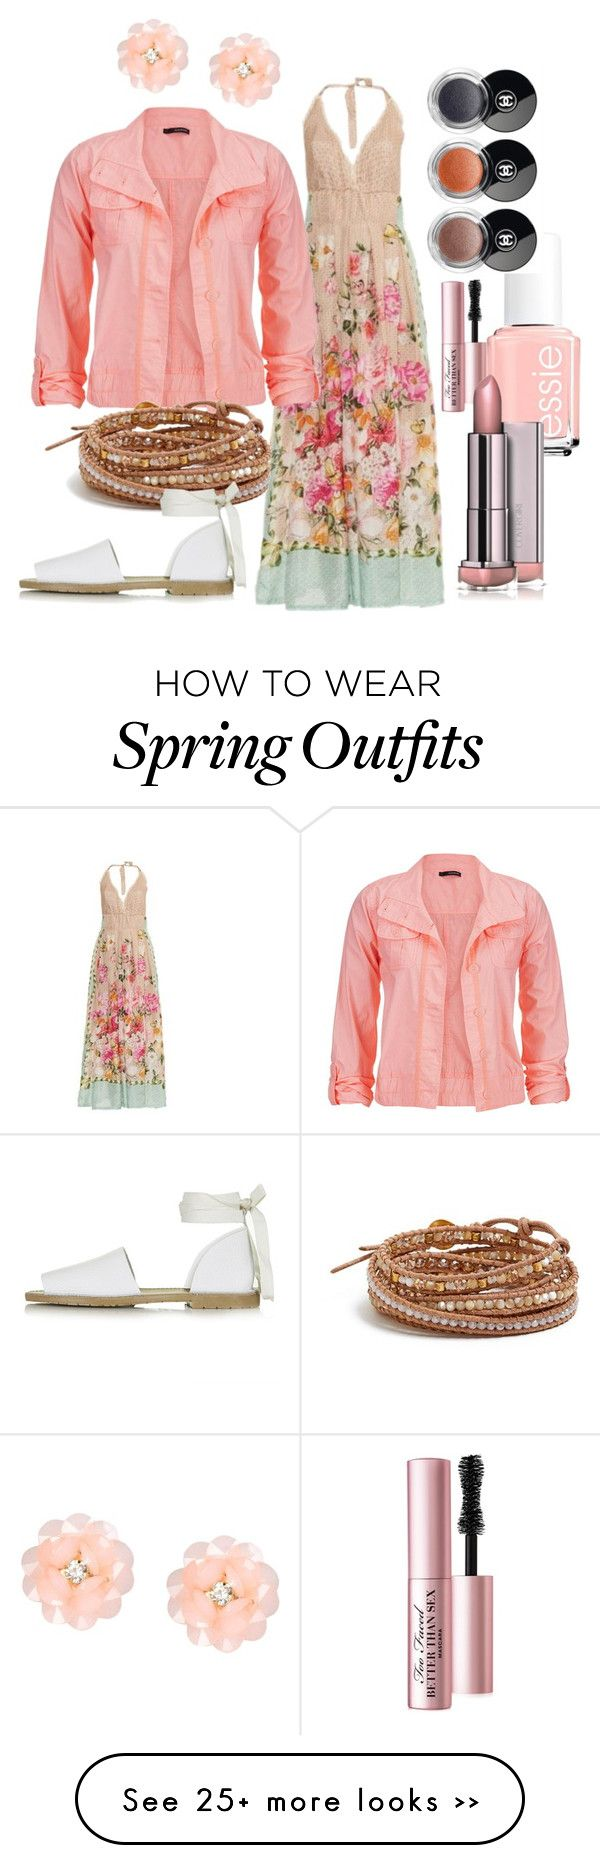 """""""Three Season Outfit: Spring, Summer and Fall"""" by cindiawb on Polyvore featuring Emamò, maurices, Chan Luu, Essie, Too Faced Cosmetics, Chanel, Topshop and Dettagli"""